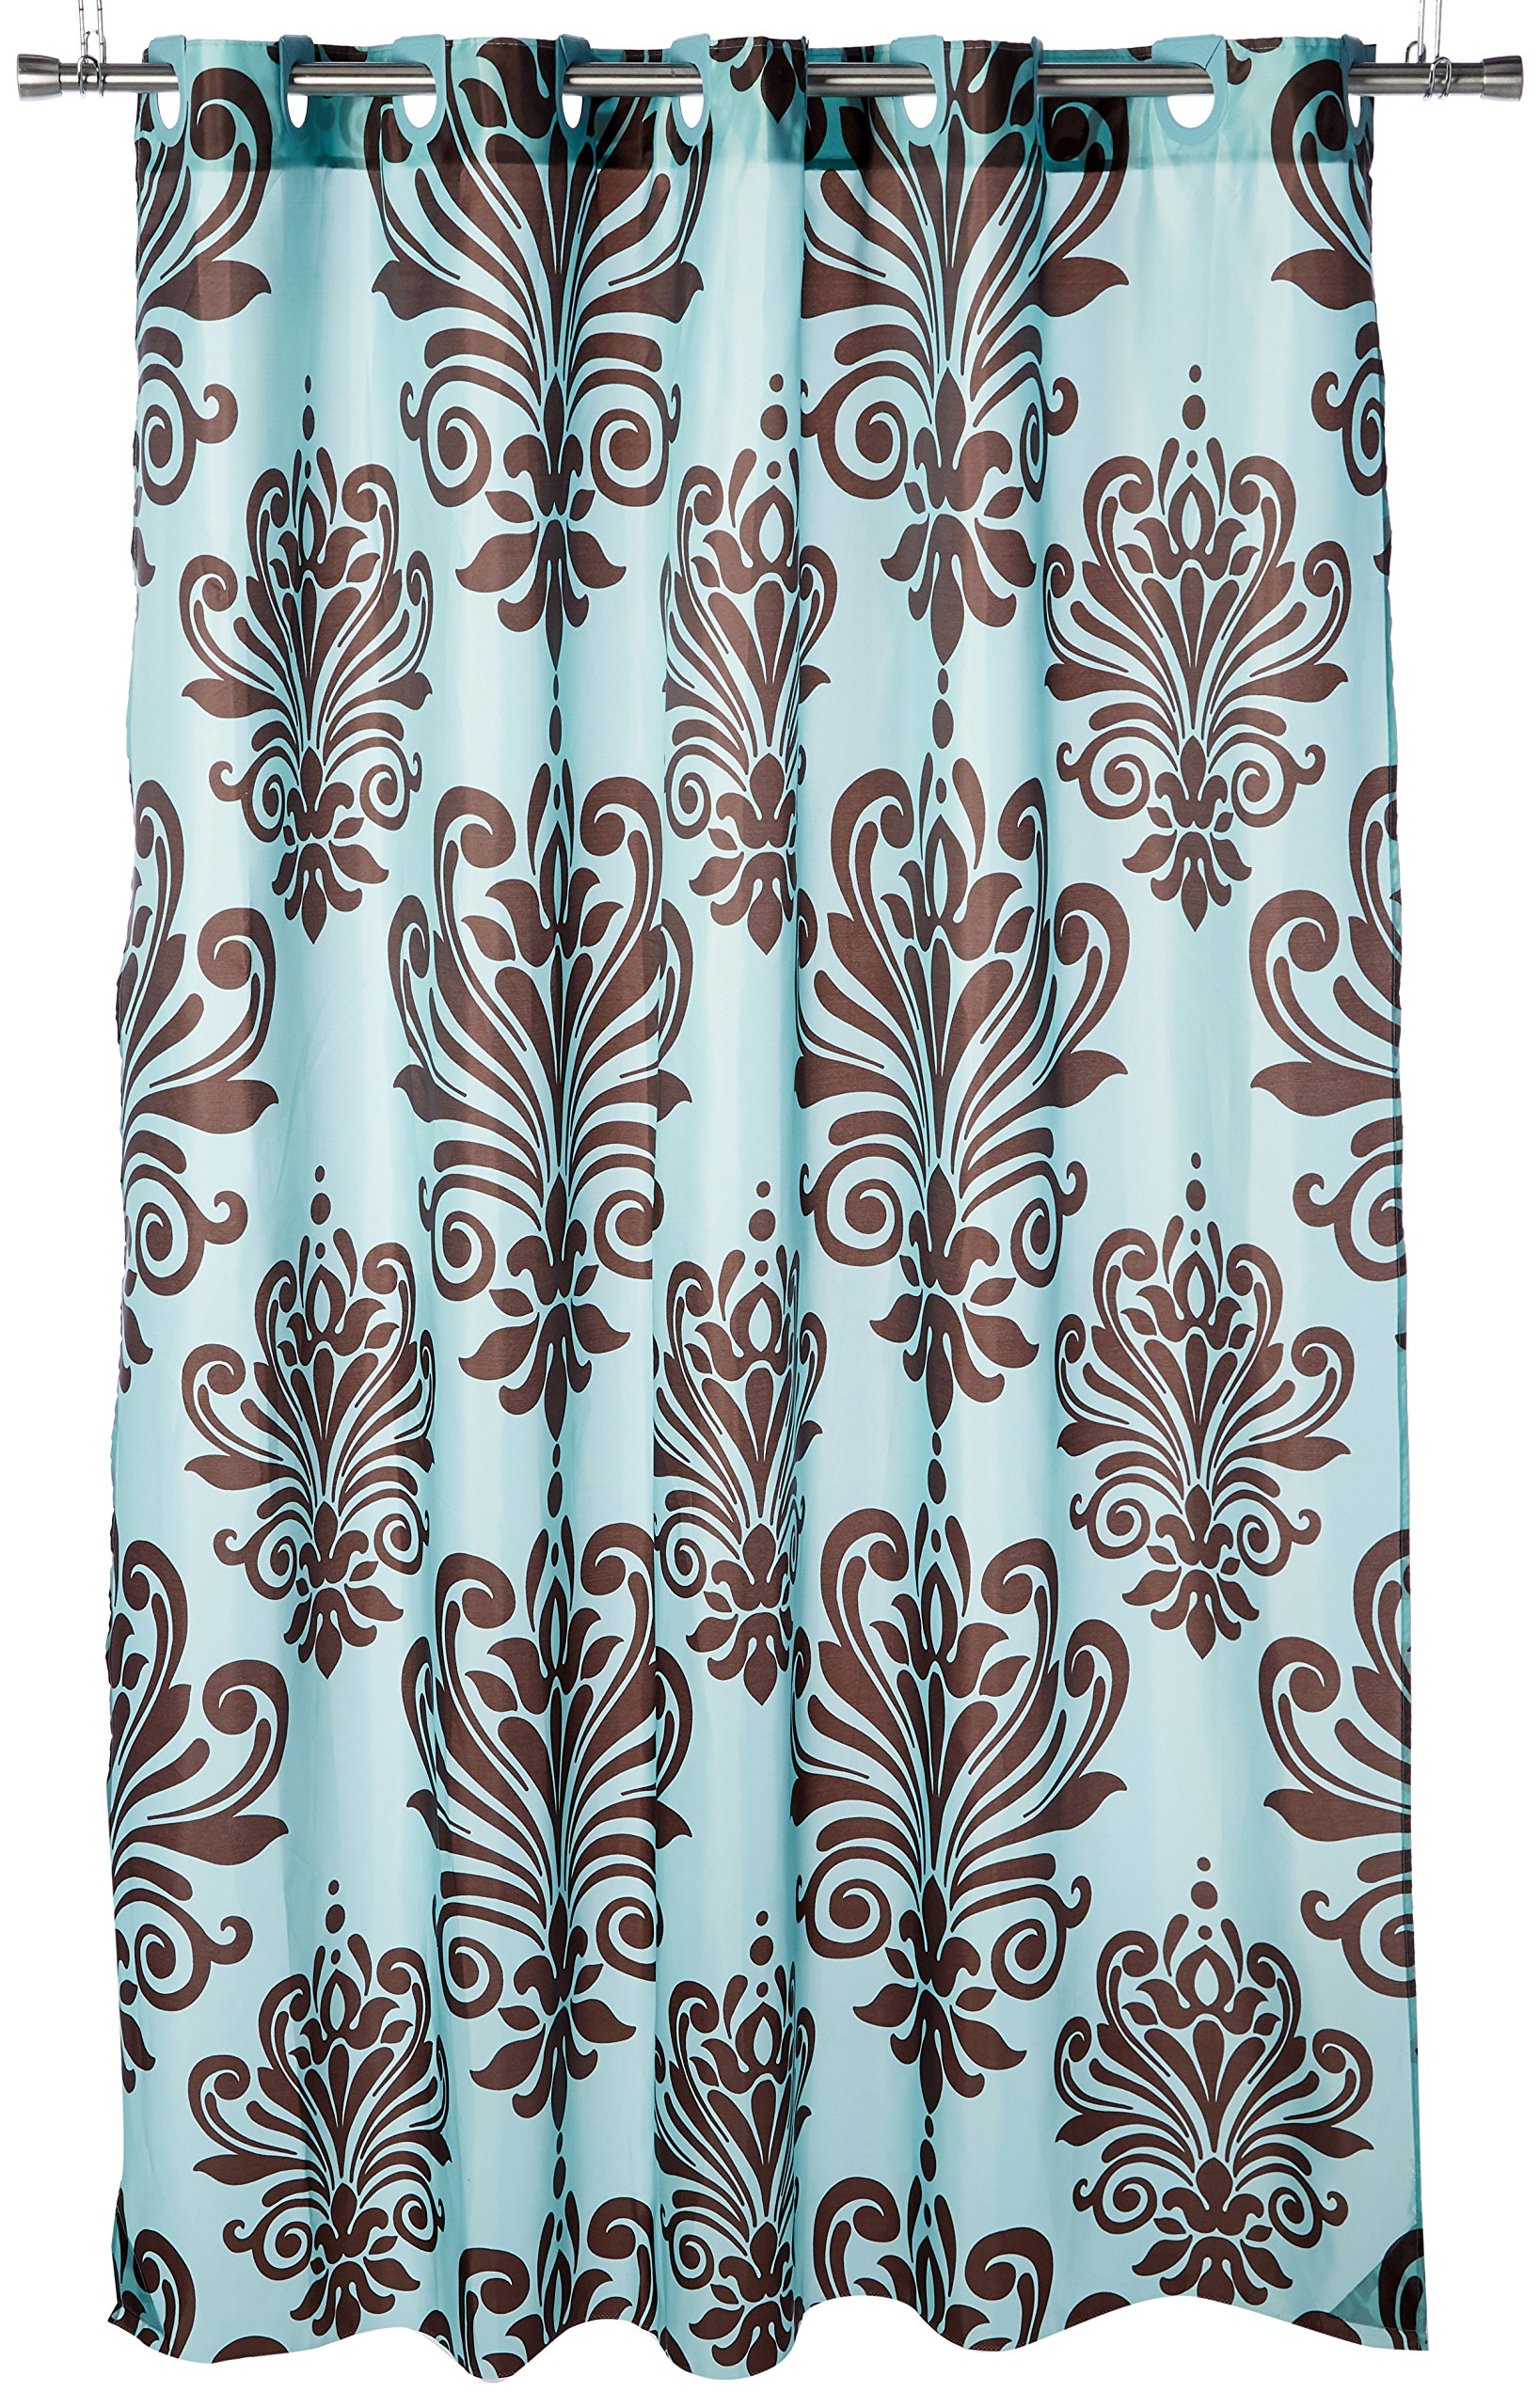 Carnation Home Fashions EZ-ON Beacon Hill Polyester Shower Curtain, Chocolate on Spa Blue